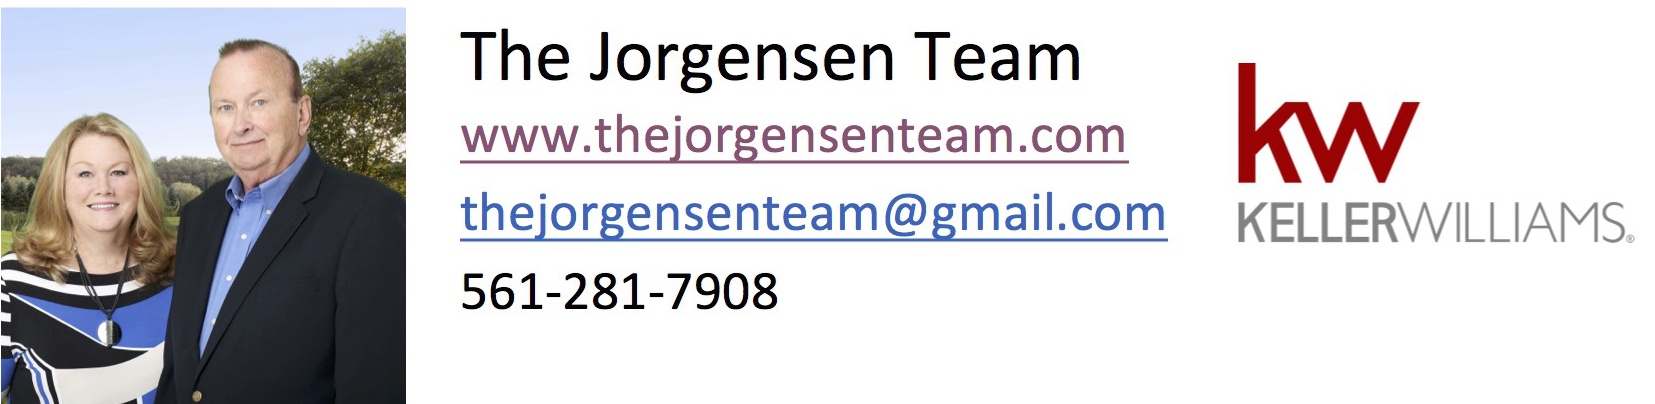 The Jorgensen Team Logo